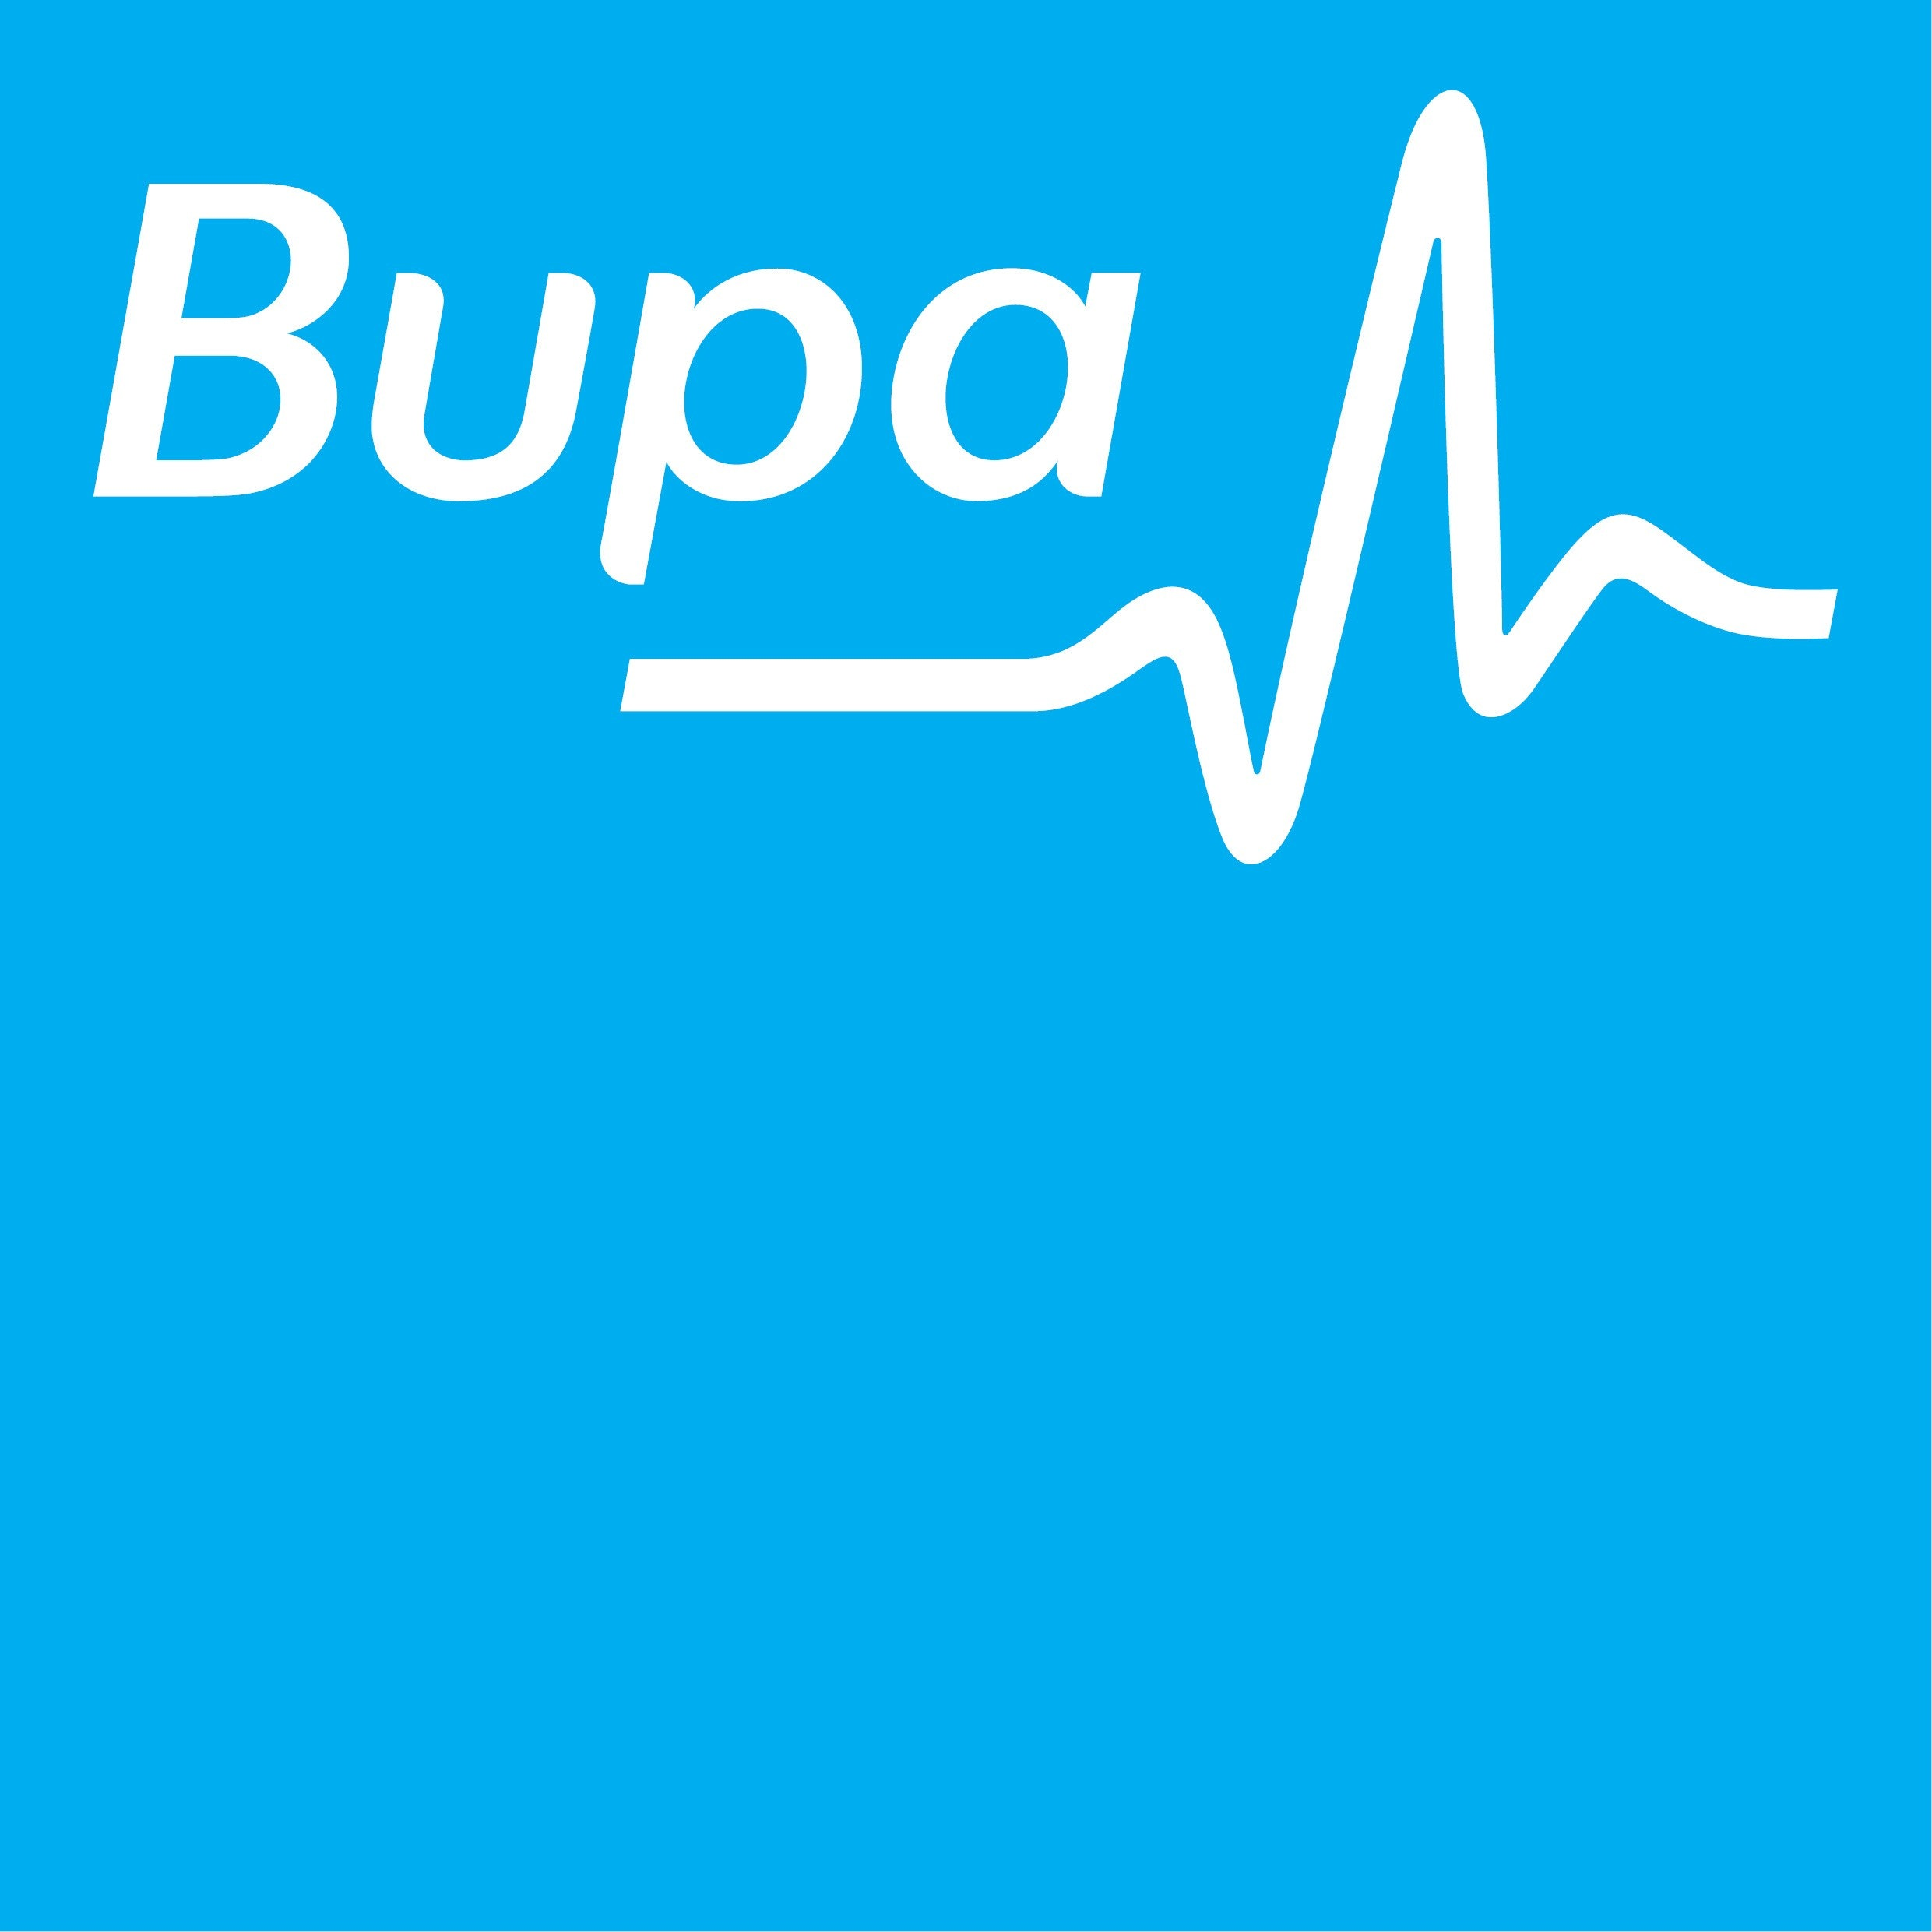 Bupa New Farm logo